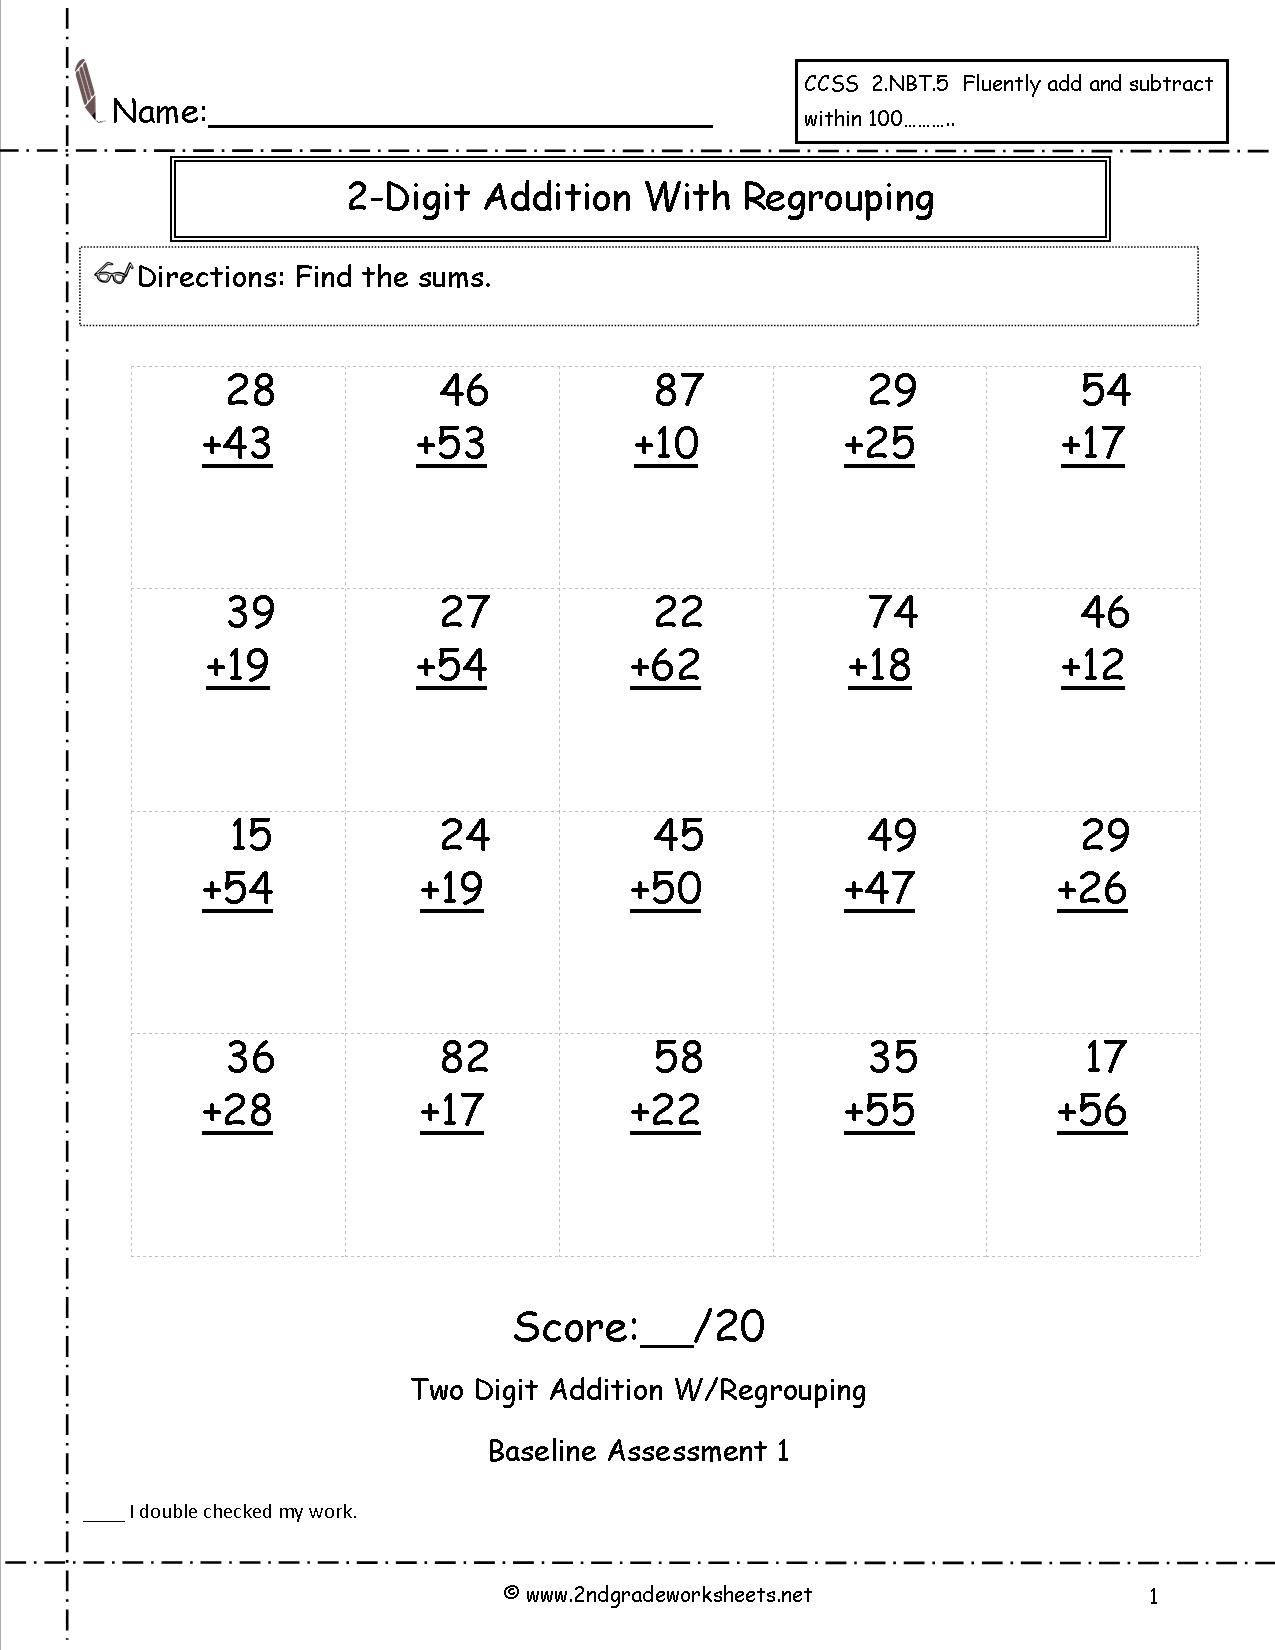 Worksheets Two Digit Addition Worksheets two digit addition with regrouping assessment love to learn subtraction activities math worksheets games fun